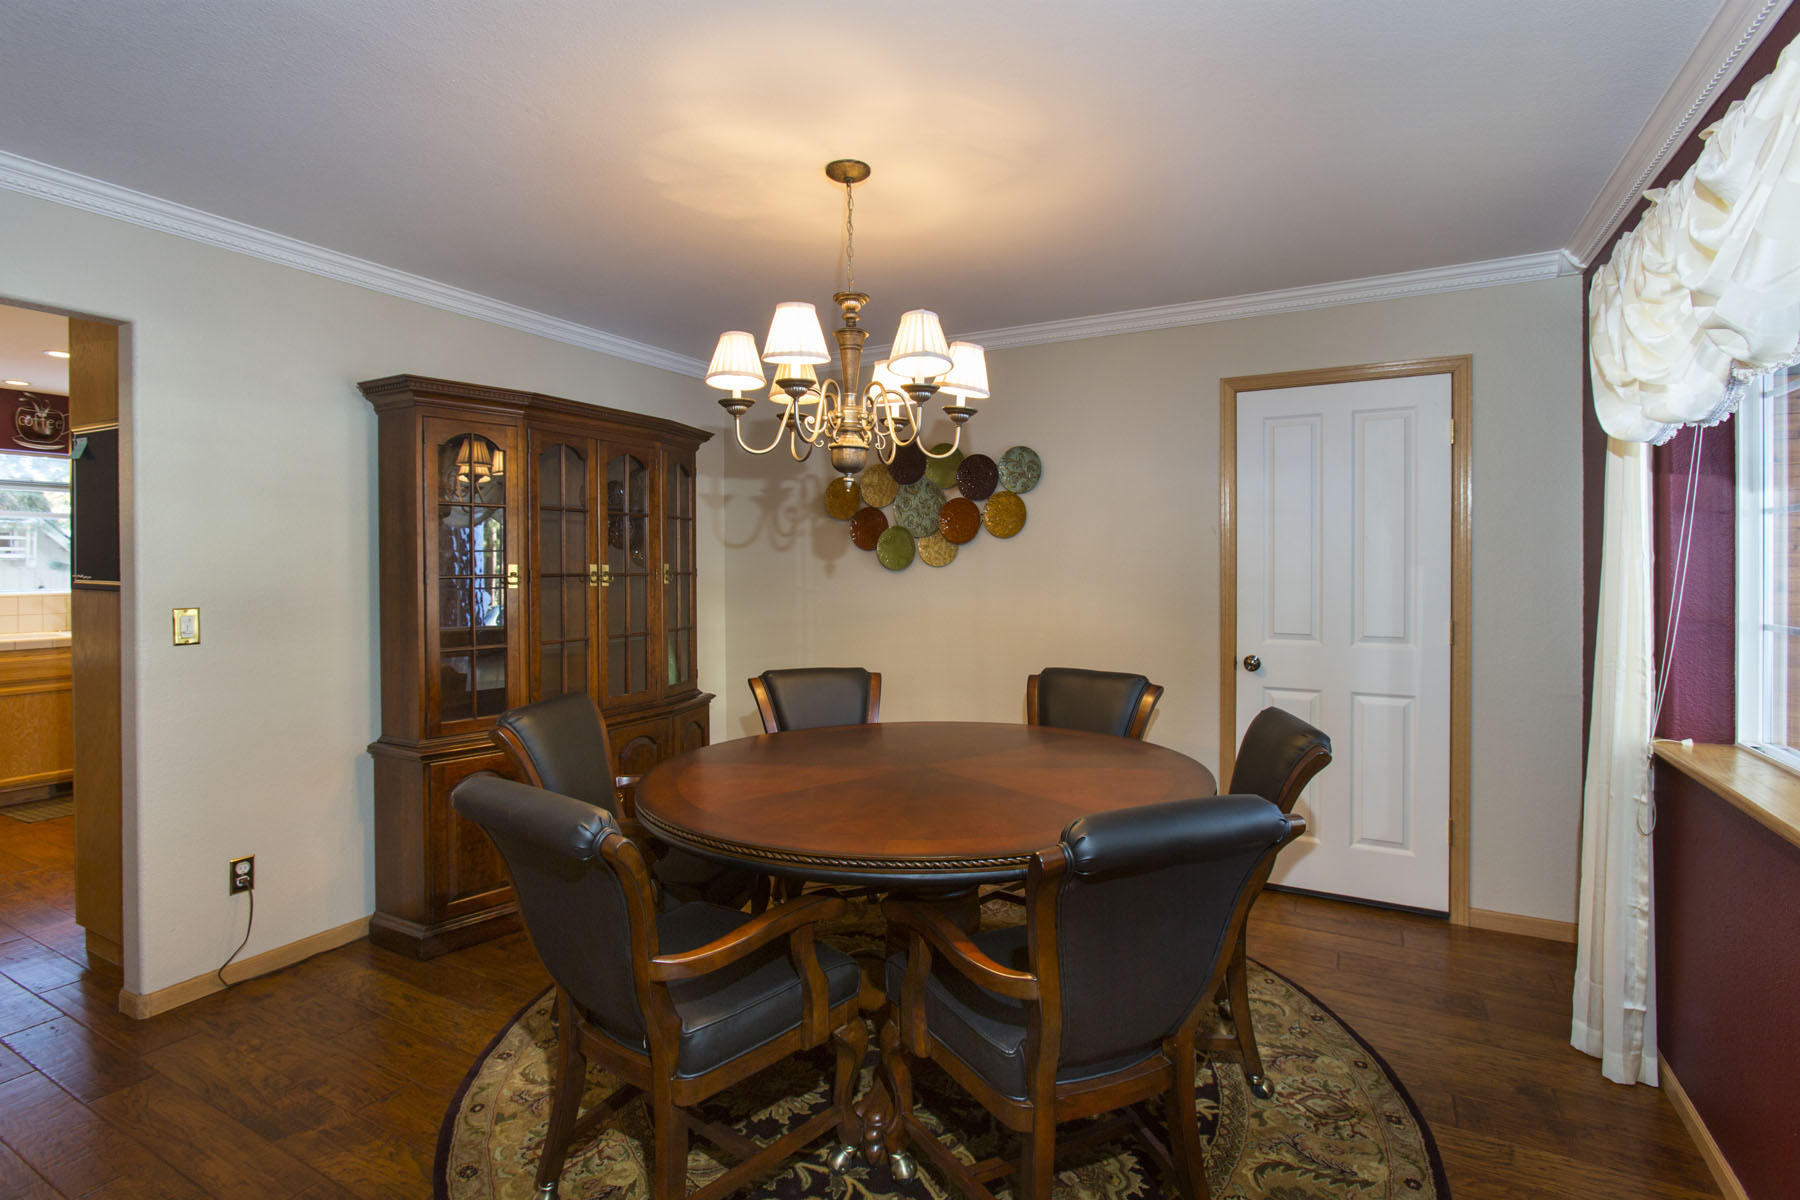 The beautiful circular dining table doubles as a game table.Just